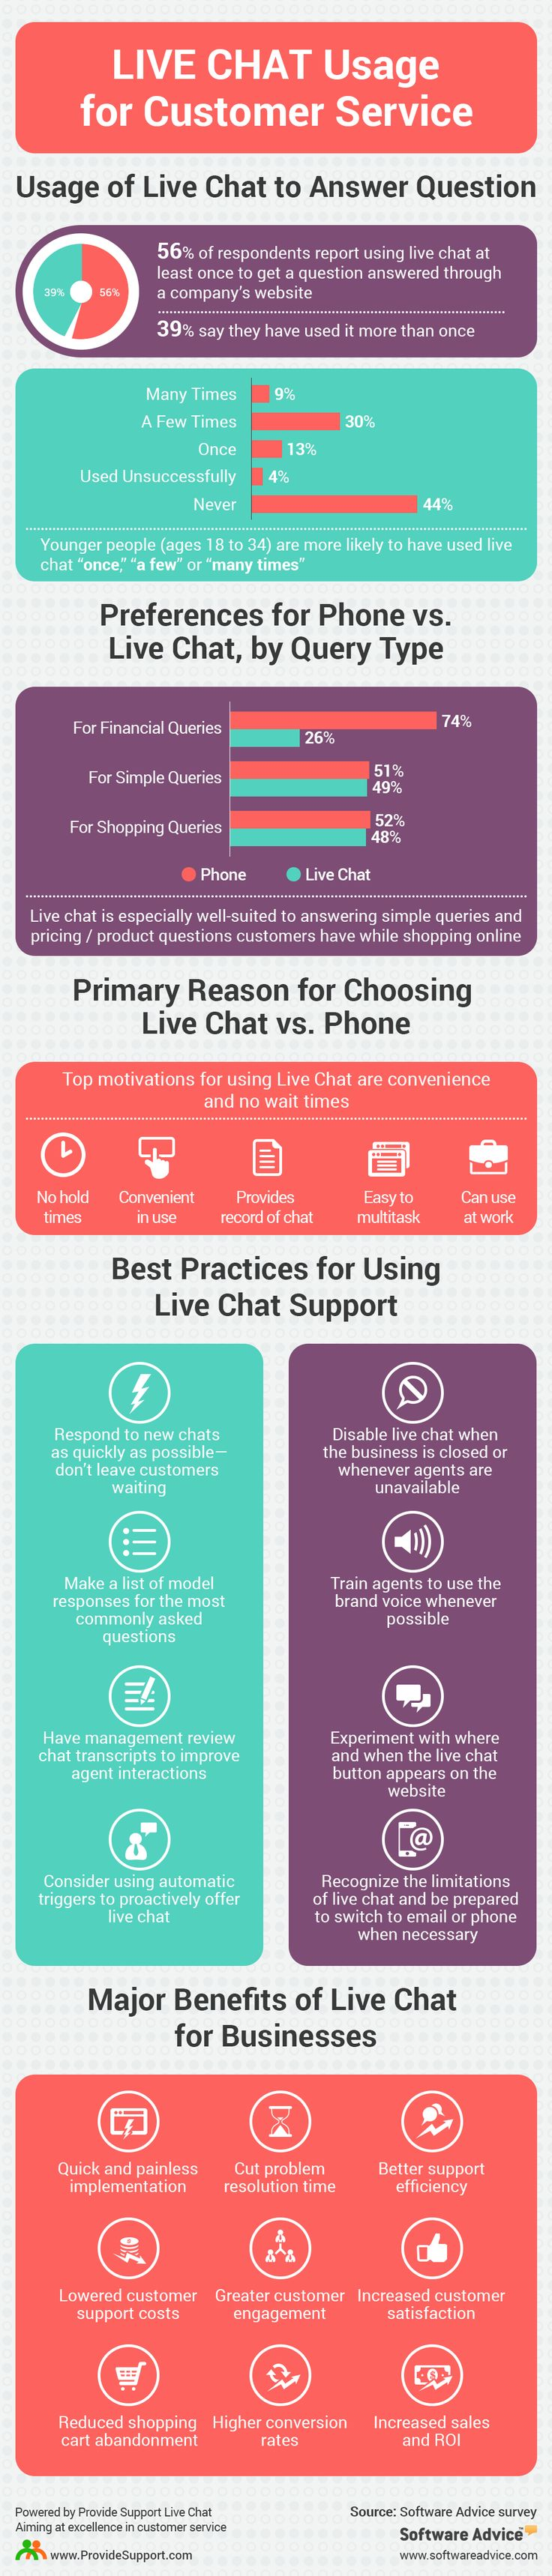 Live Chat Usage for Customer Service (Infographic): http://www.providesupport.com/blog/live-chat-usage-for-customer-service-infographic/ #custserv #livechat